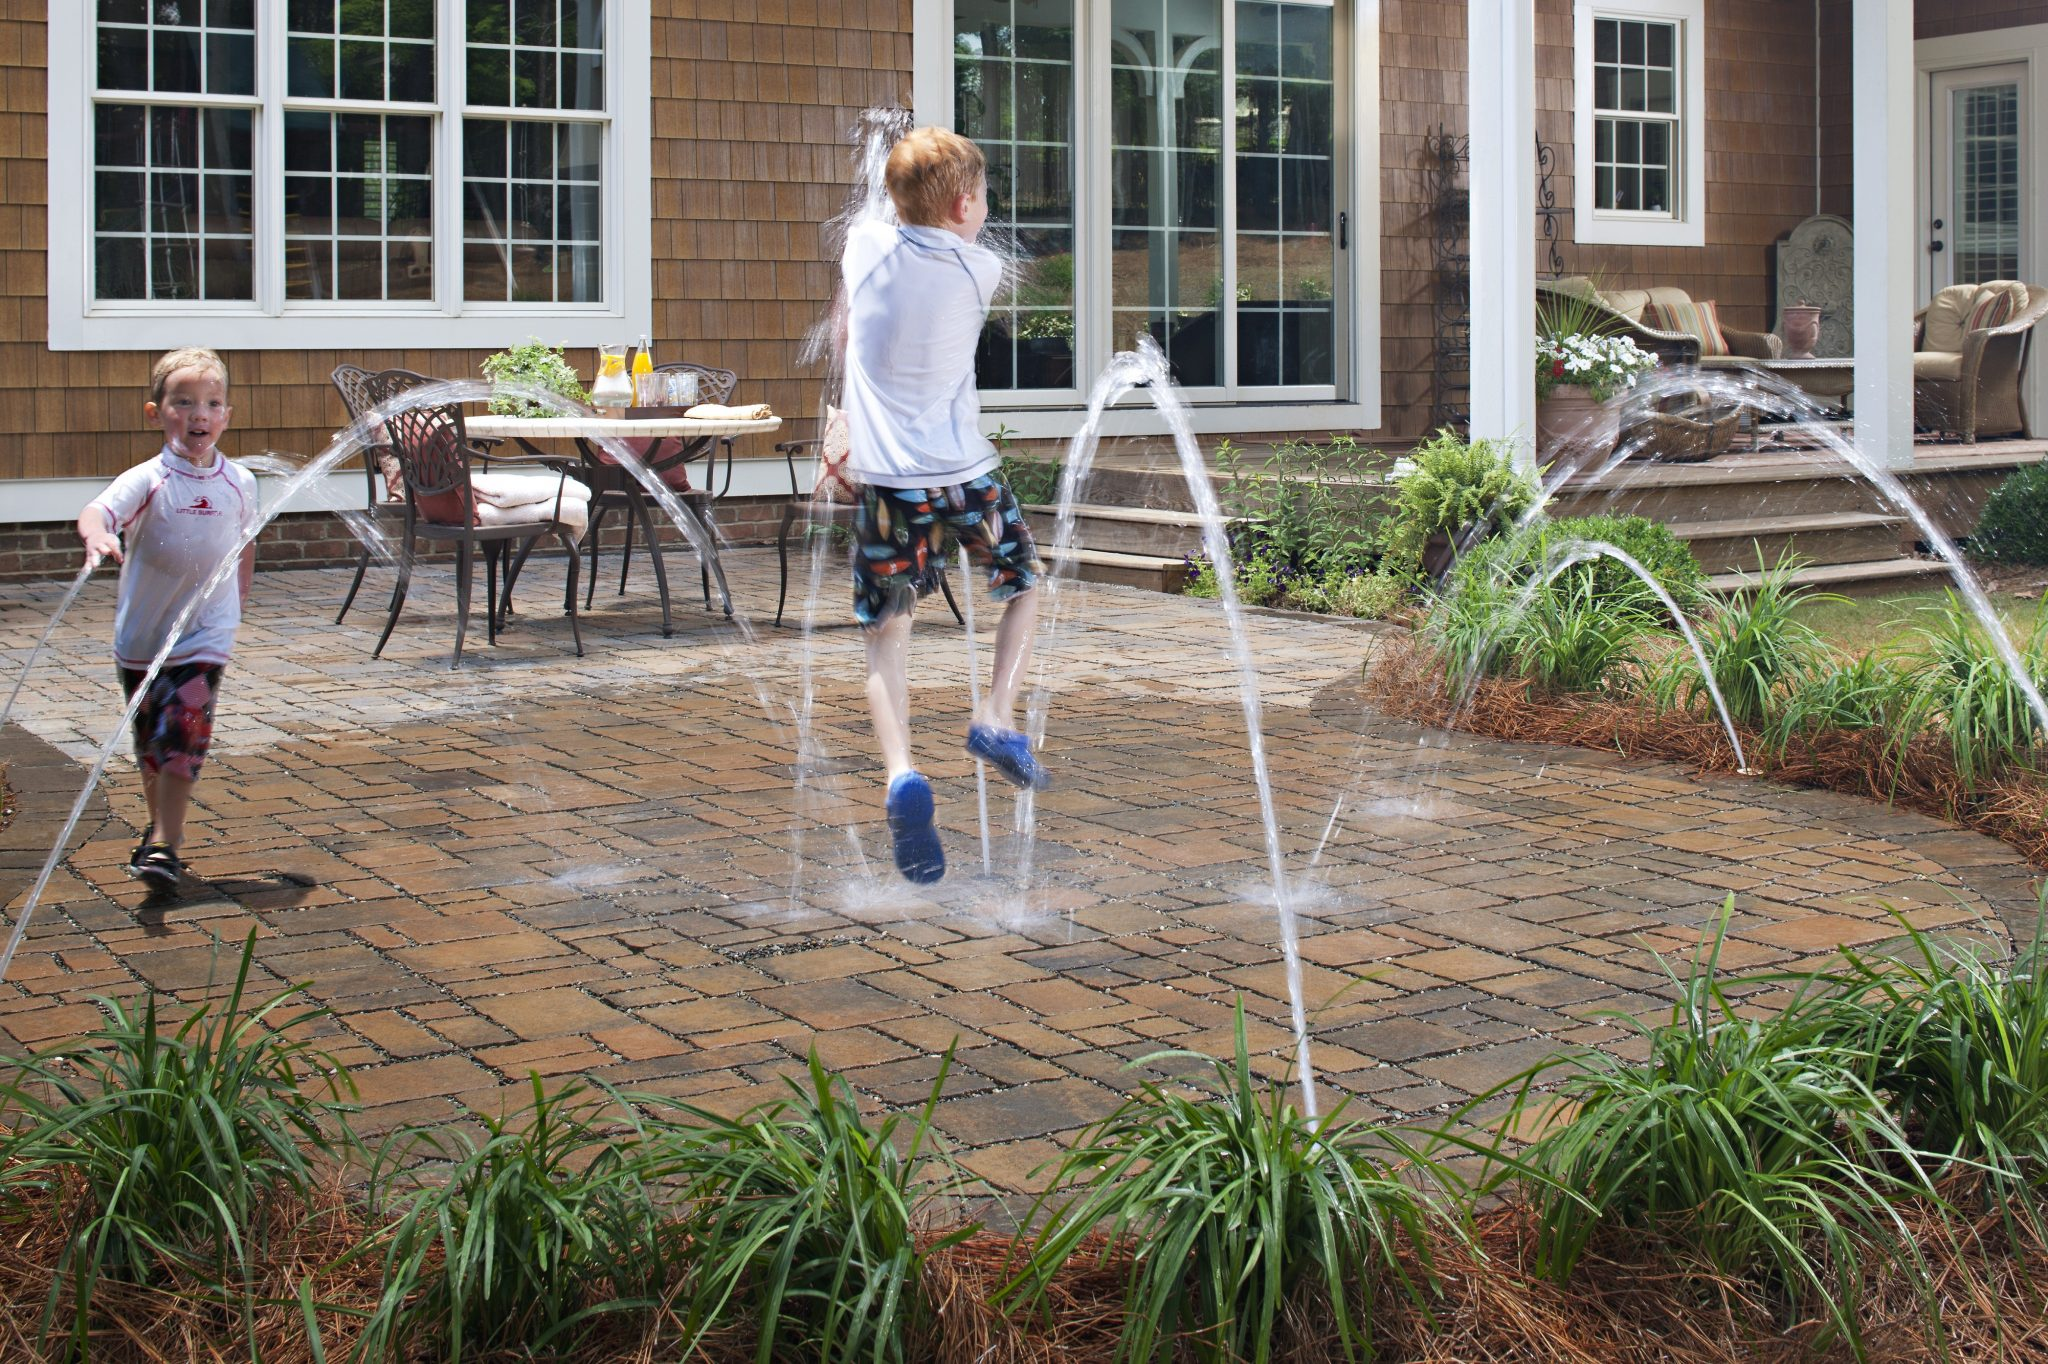 Permeable pavers installation guide pro tips advice for Small backyard ideas for kids